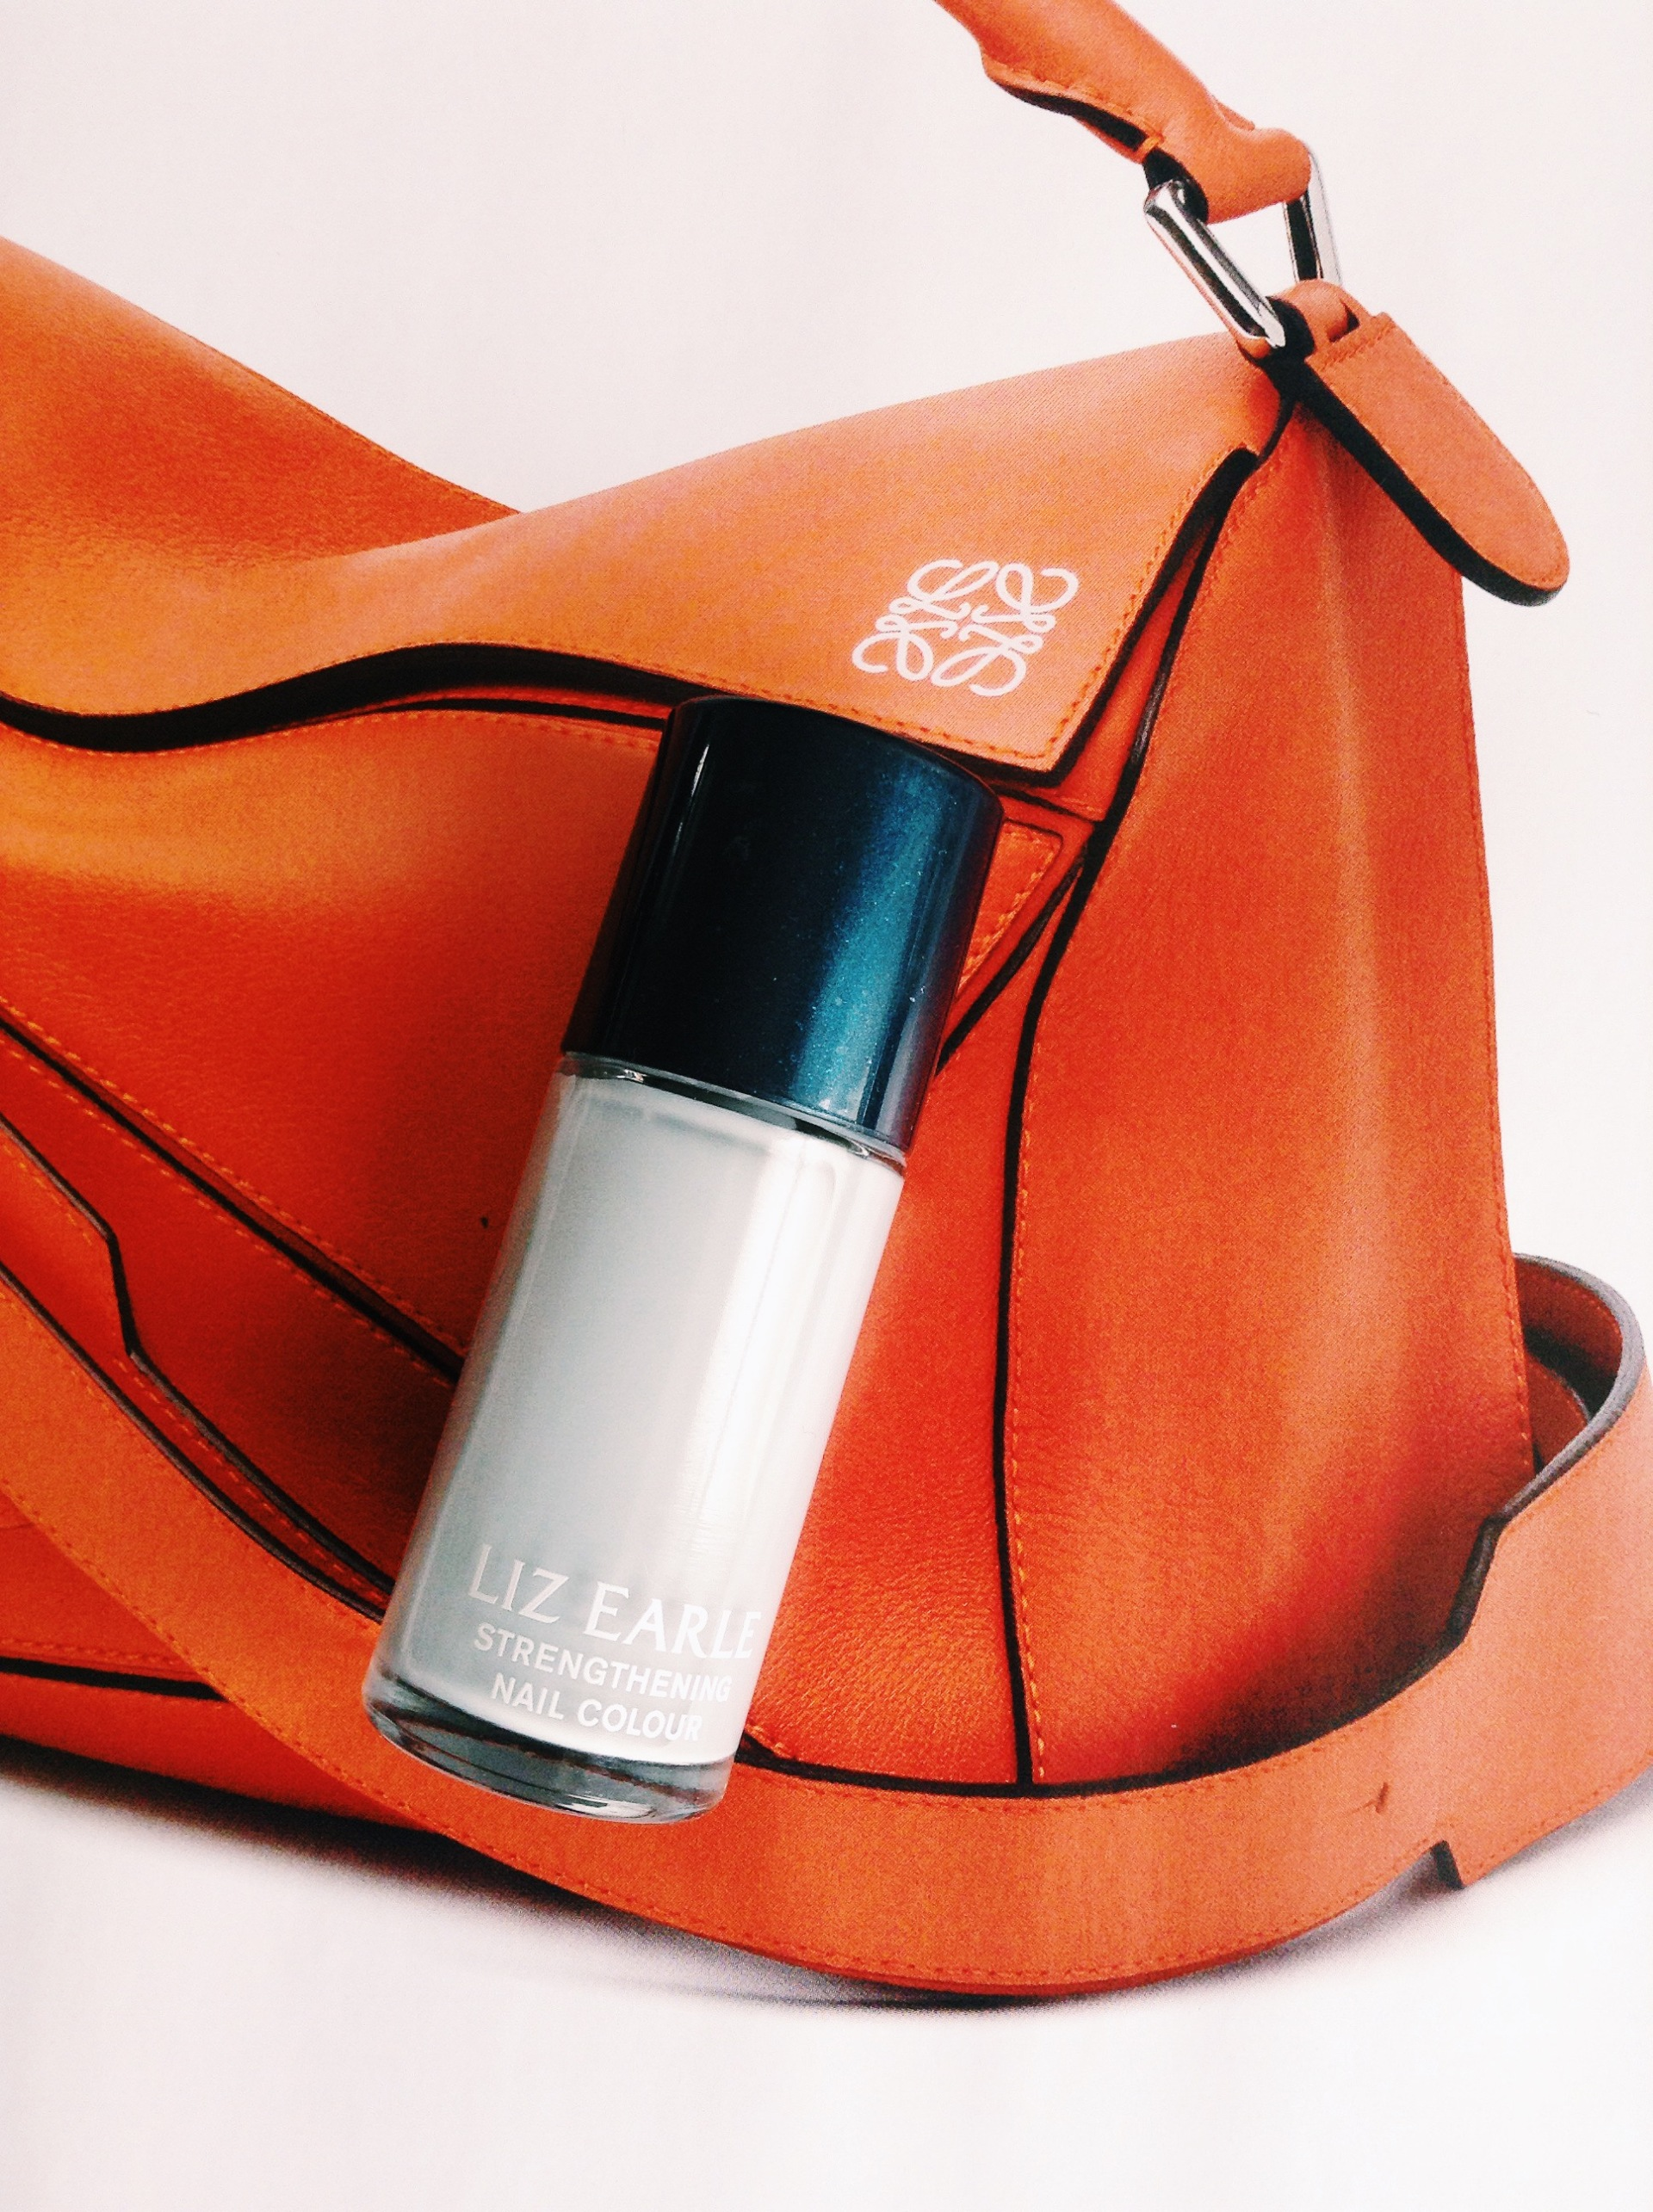 Liz Earle Grey nail polish